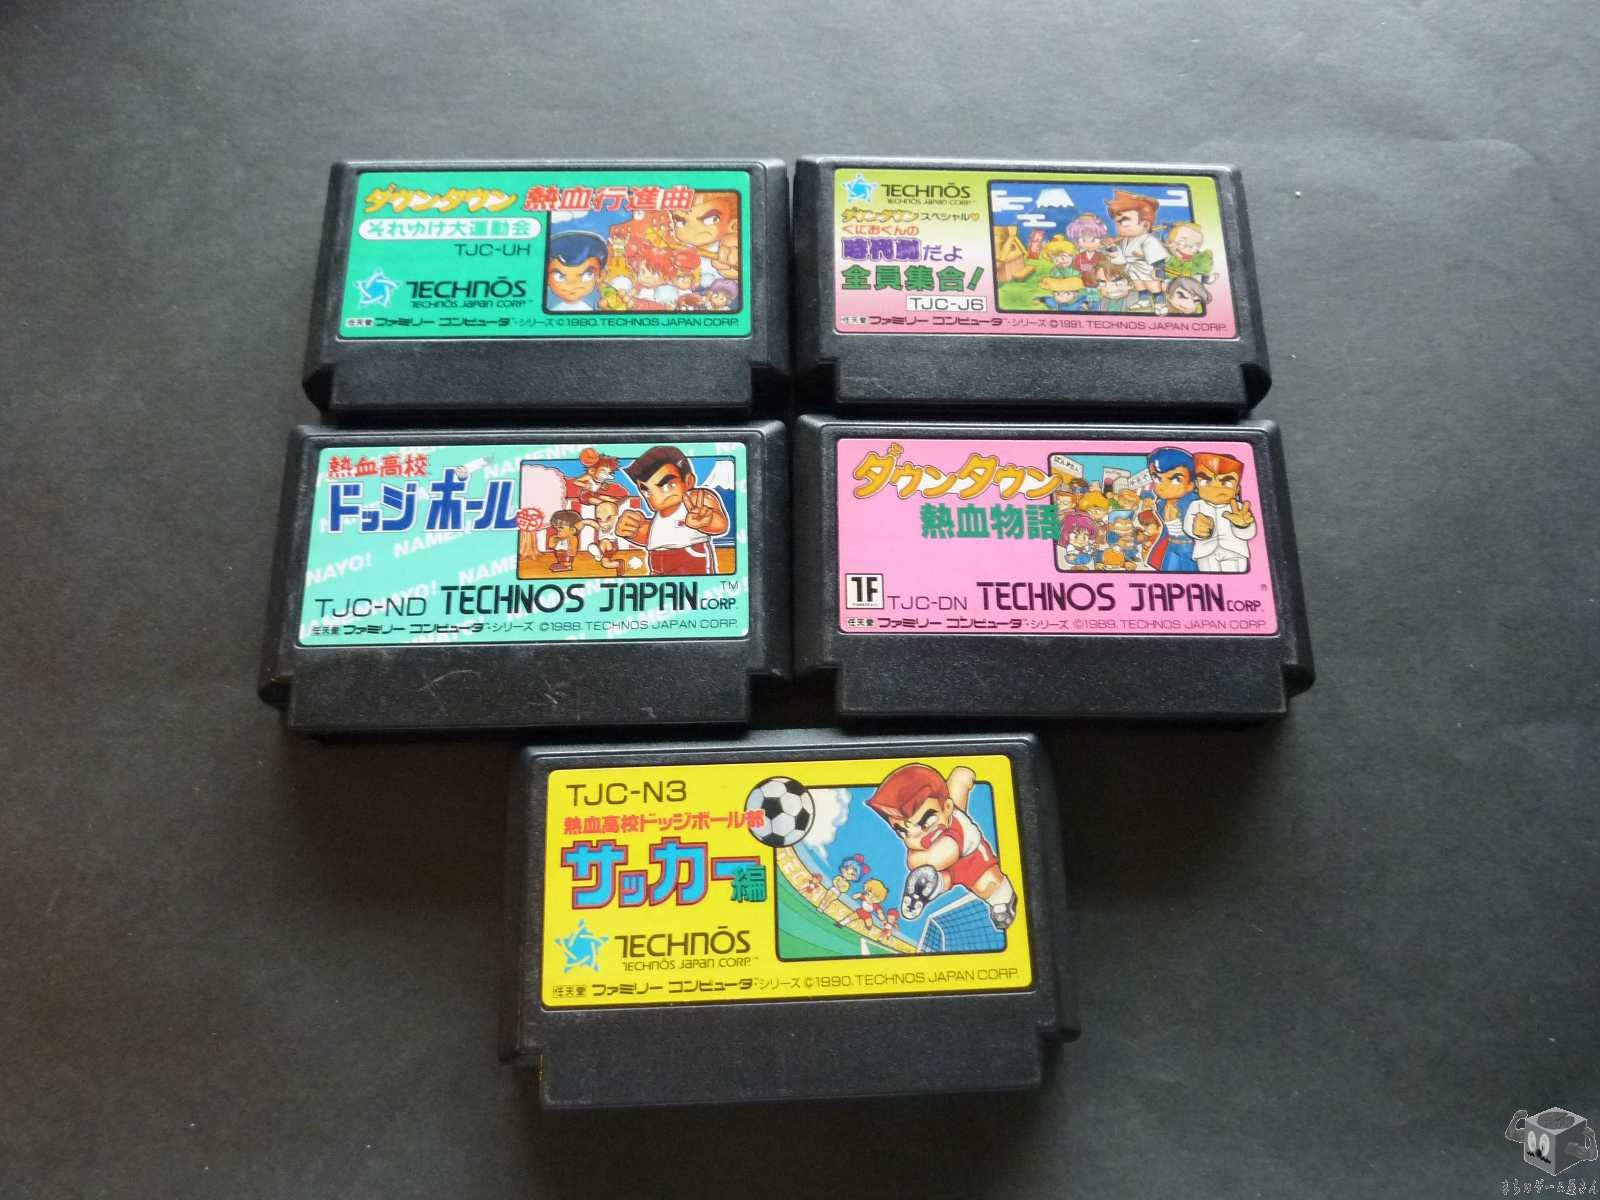 [FC] River City Ransom - Downtown Nekketsu Monogatari set of 5 games